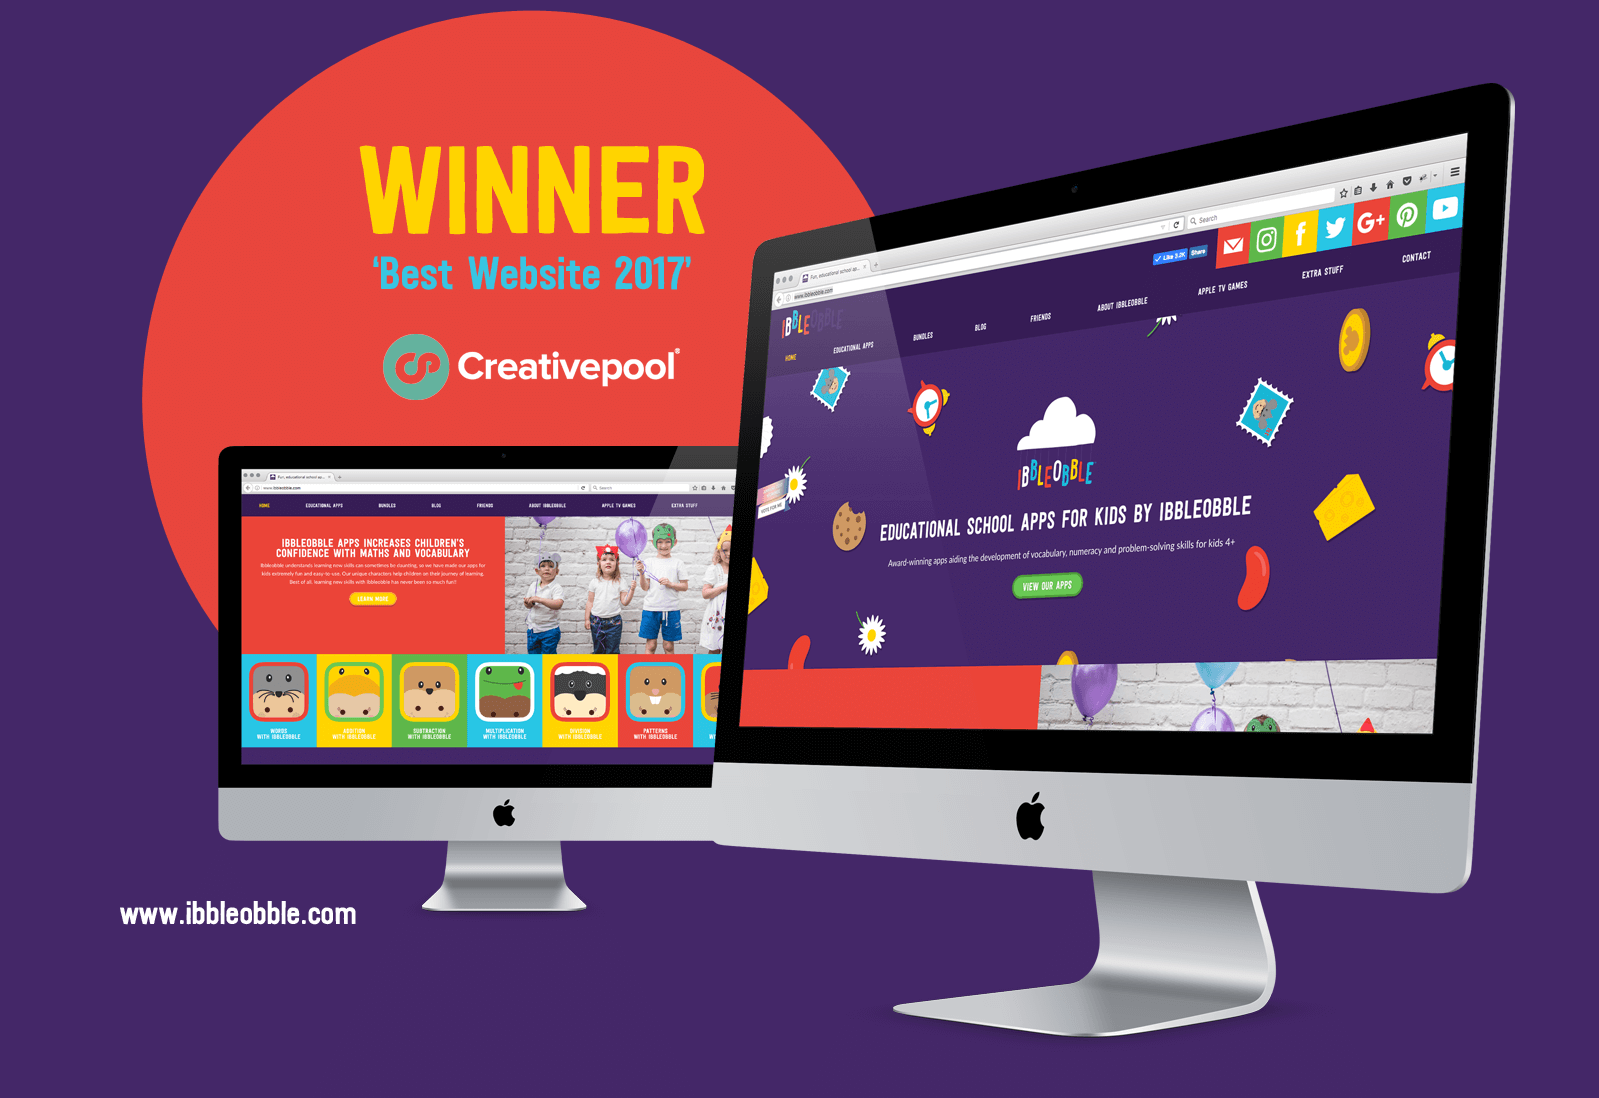 Creativepool 'Best Website' 2017